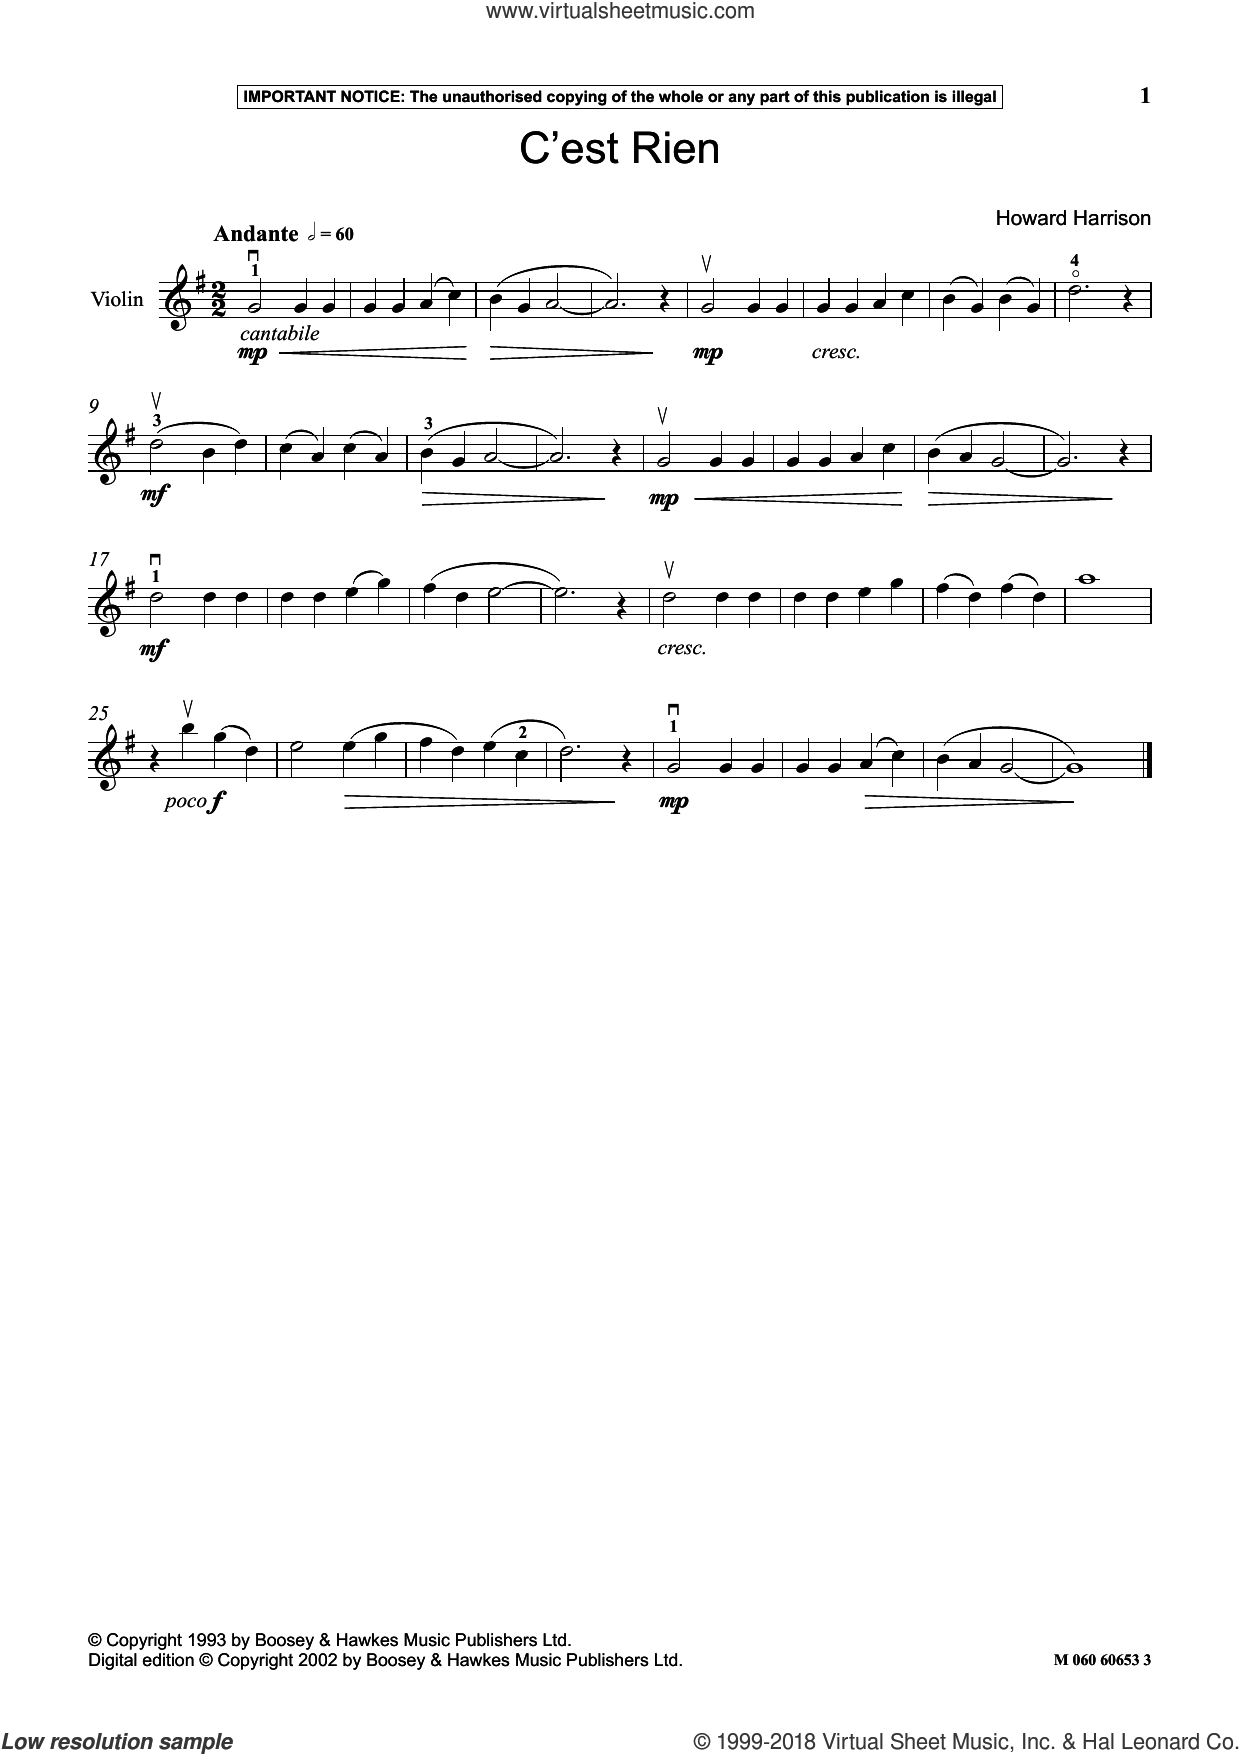 C Est Rien sheet music for violin solo by Howard Harrison, classical score, intermediate skill level